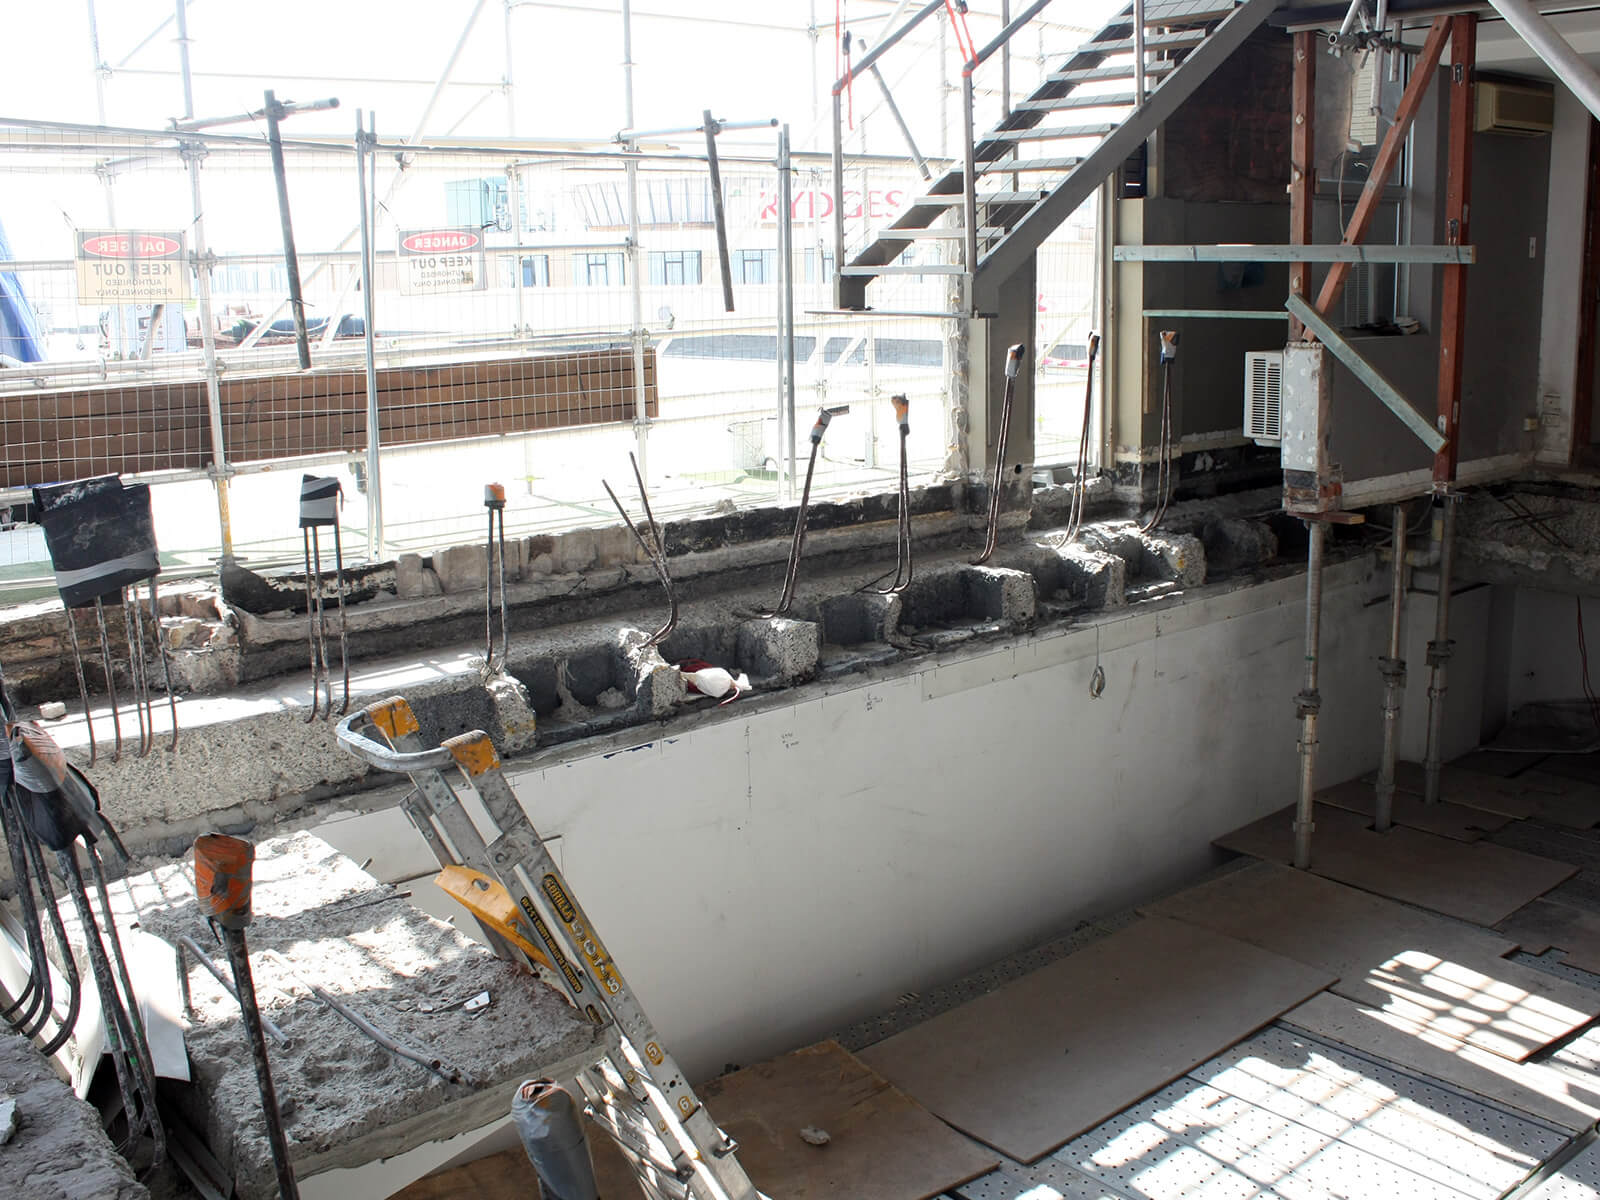 Areas Of The Roof Slab Where Concrete Was Repaired - Structural Repair - Remedial Building Services